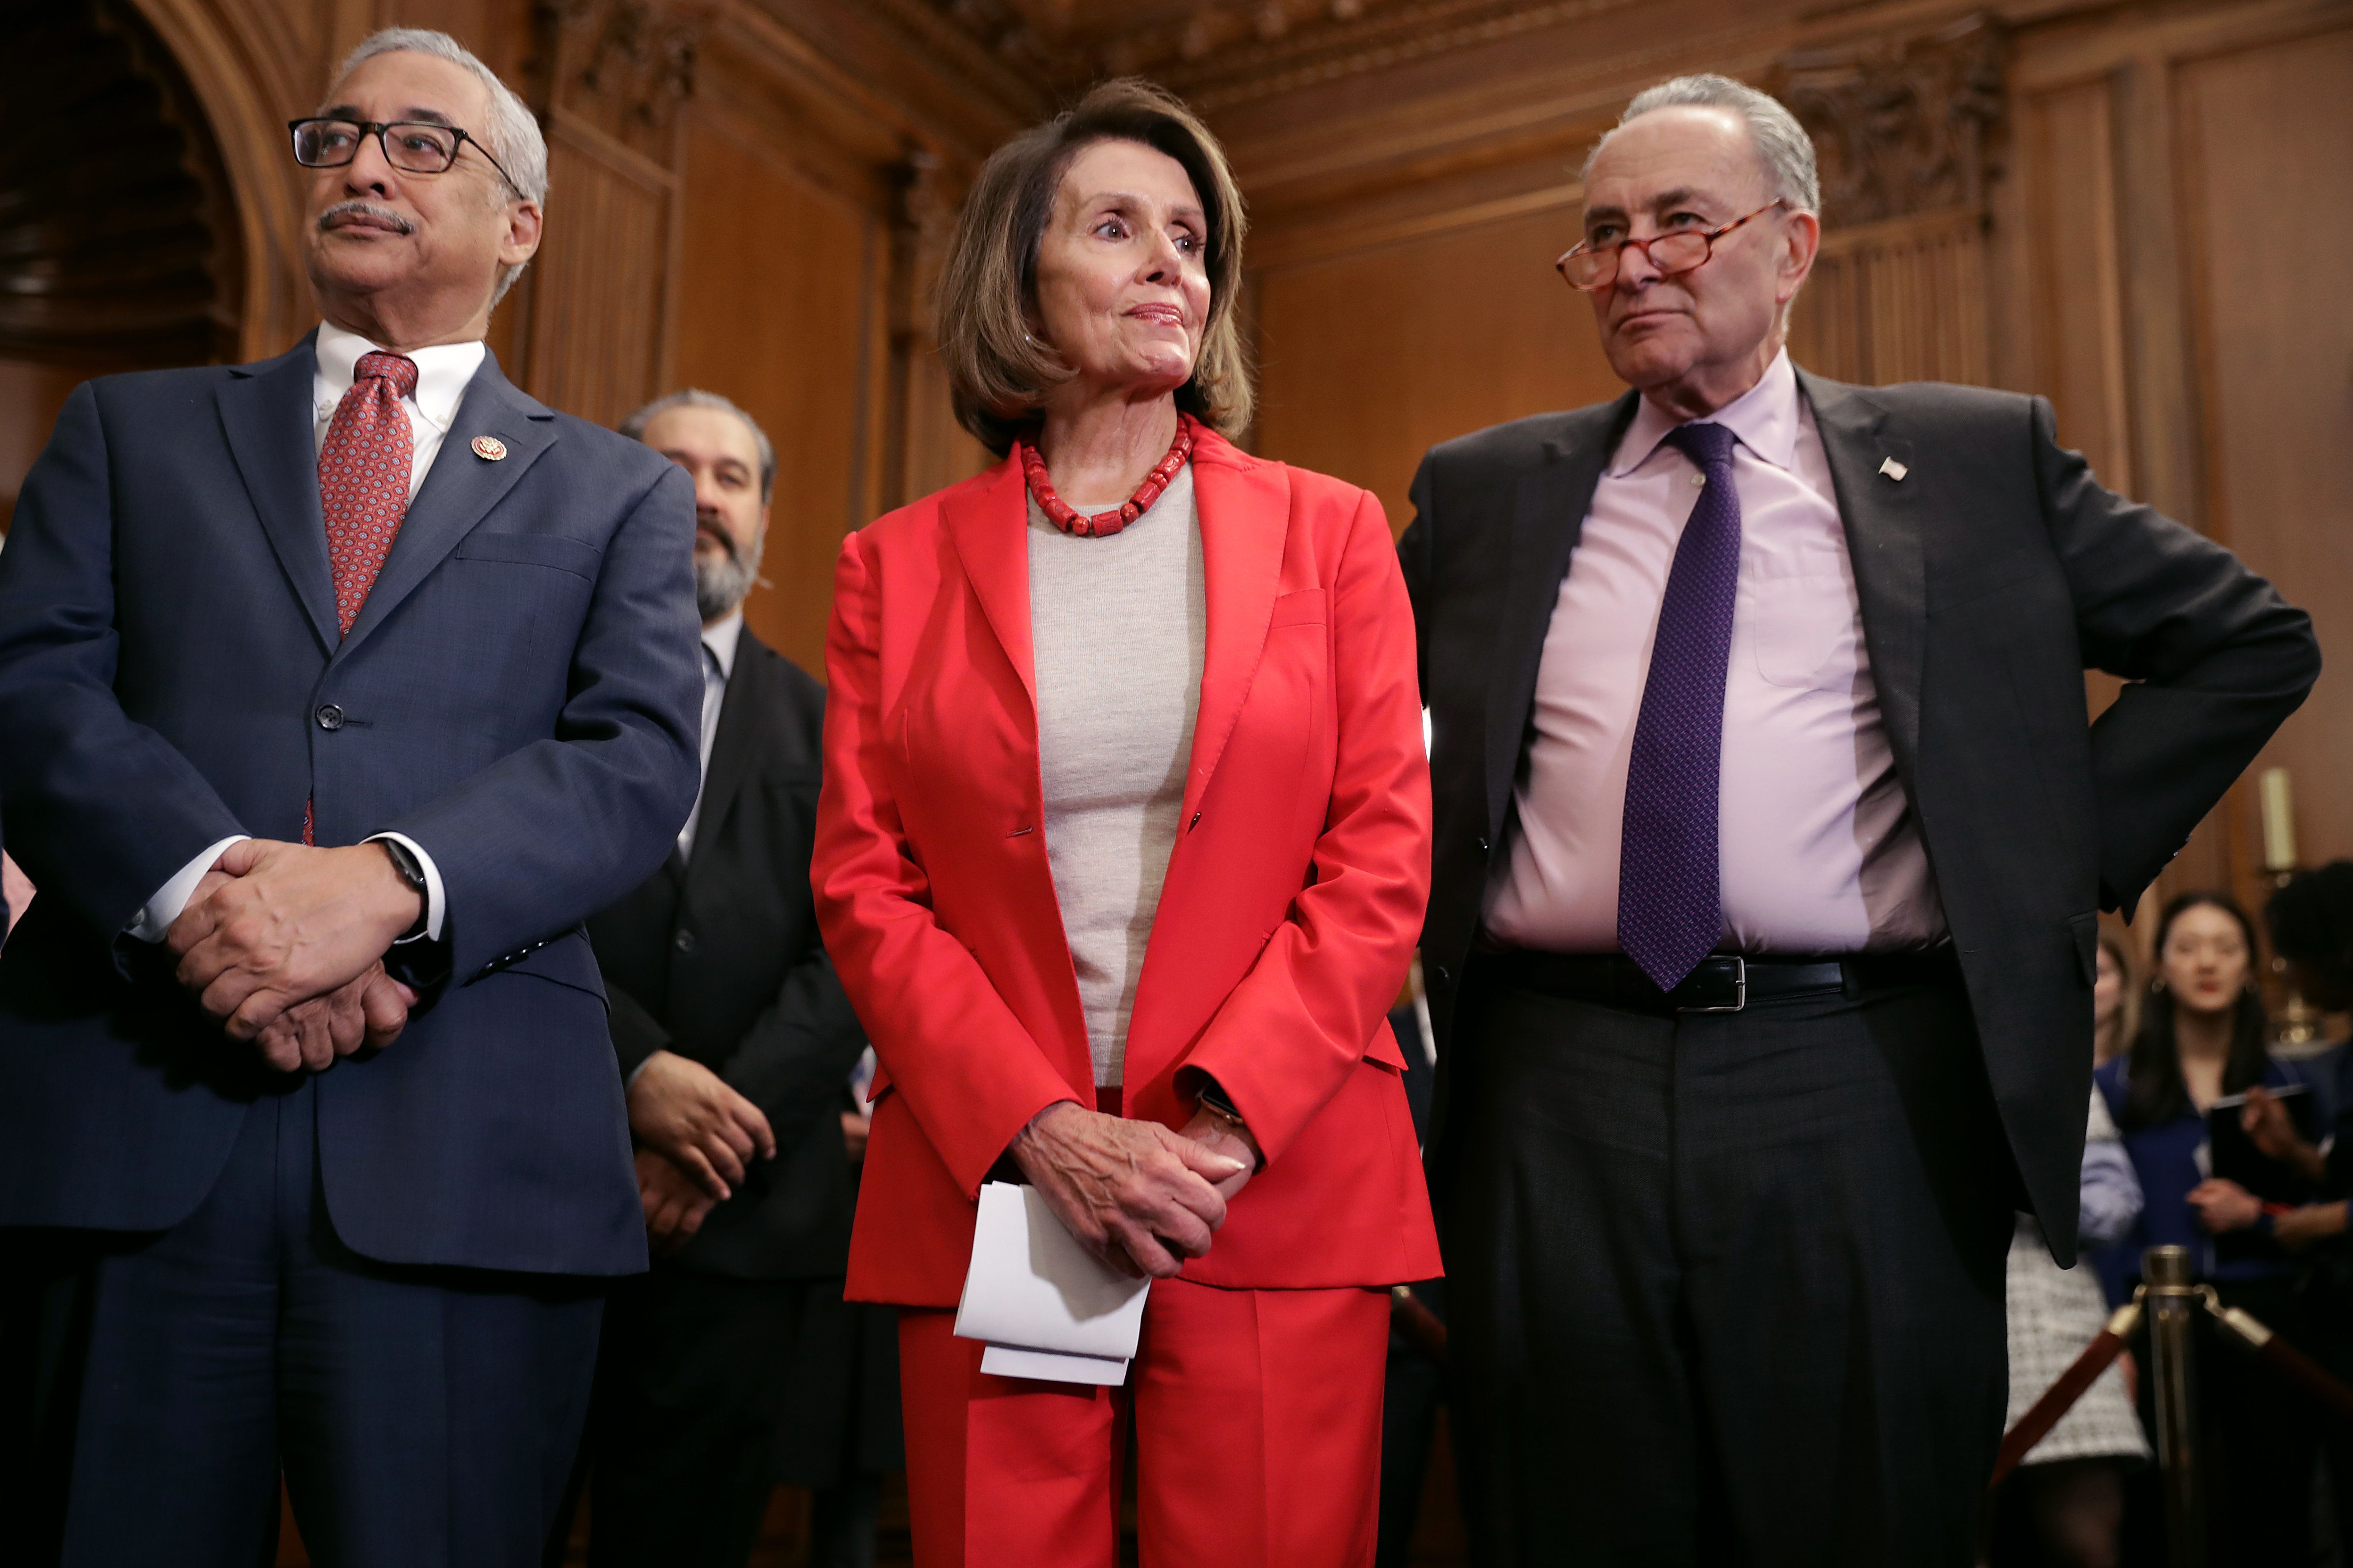 WASHINGTON, DC - JANUARY 16: (L-R) House Education and Labor Chairman Bobby Scott (D-VA), Speaker of the House Nancy Pelosi (D-CA) and Senate Minority Leader Charles Schumer (D-NY) attend an event to introduce the Raise The Wage Act in the Rayburn Room at the U.S. Capitol January 16, 2019 in Washington, DC. The proposed legislation, which will gradually raise the minimum wage to $15 by 2024, is unlikely to pass in the Republican-controlled Senate. (Photo by Chip Somodevilla/Getty Images)